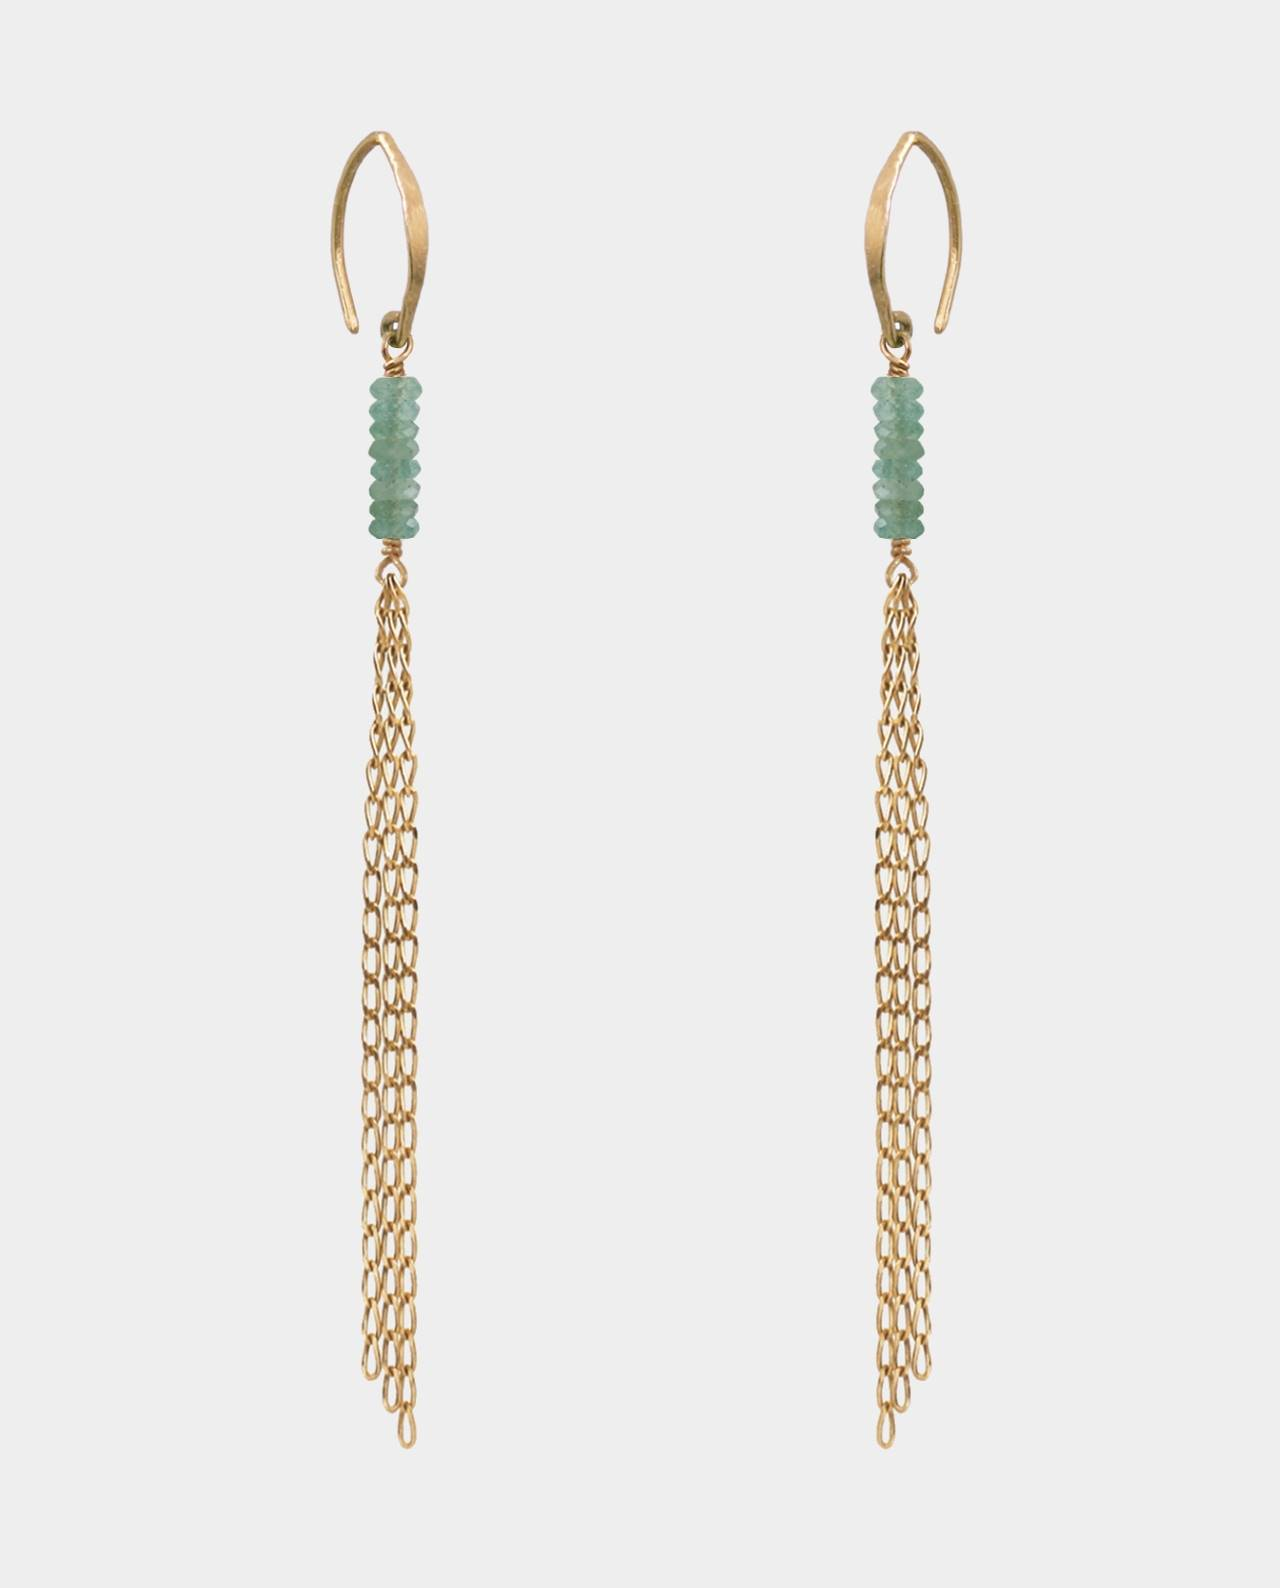 Hammered rustic ear hooks with aventurins on earhanger chains plated with 18 carat gold